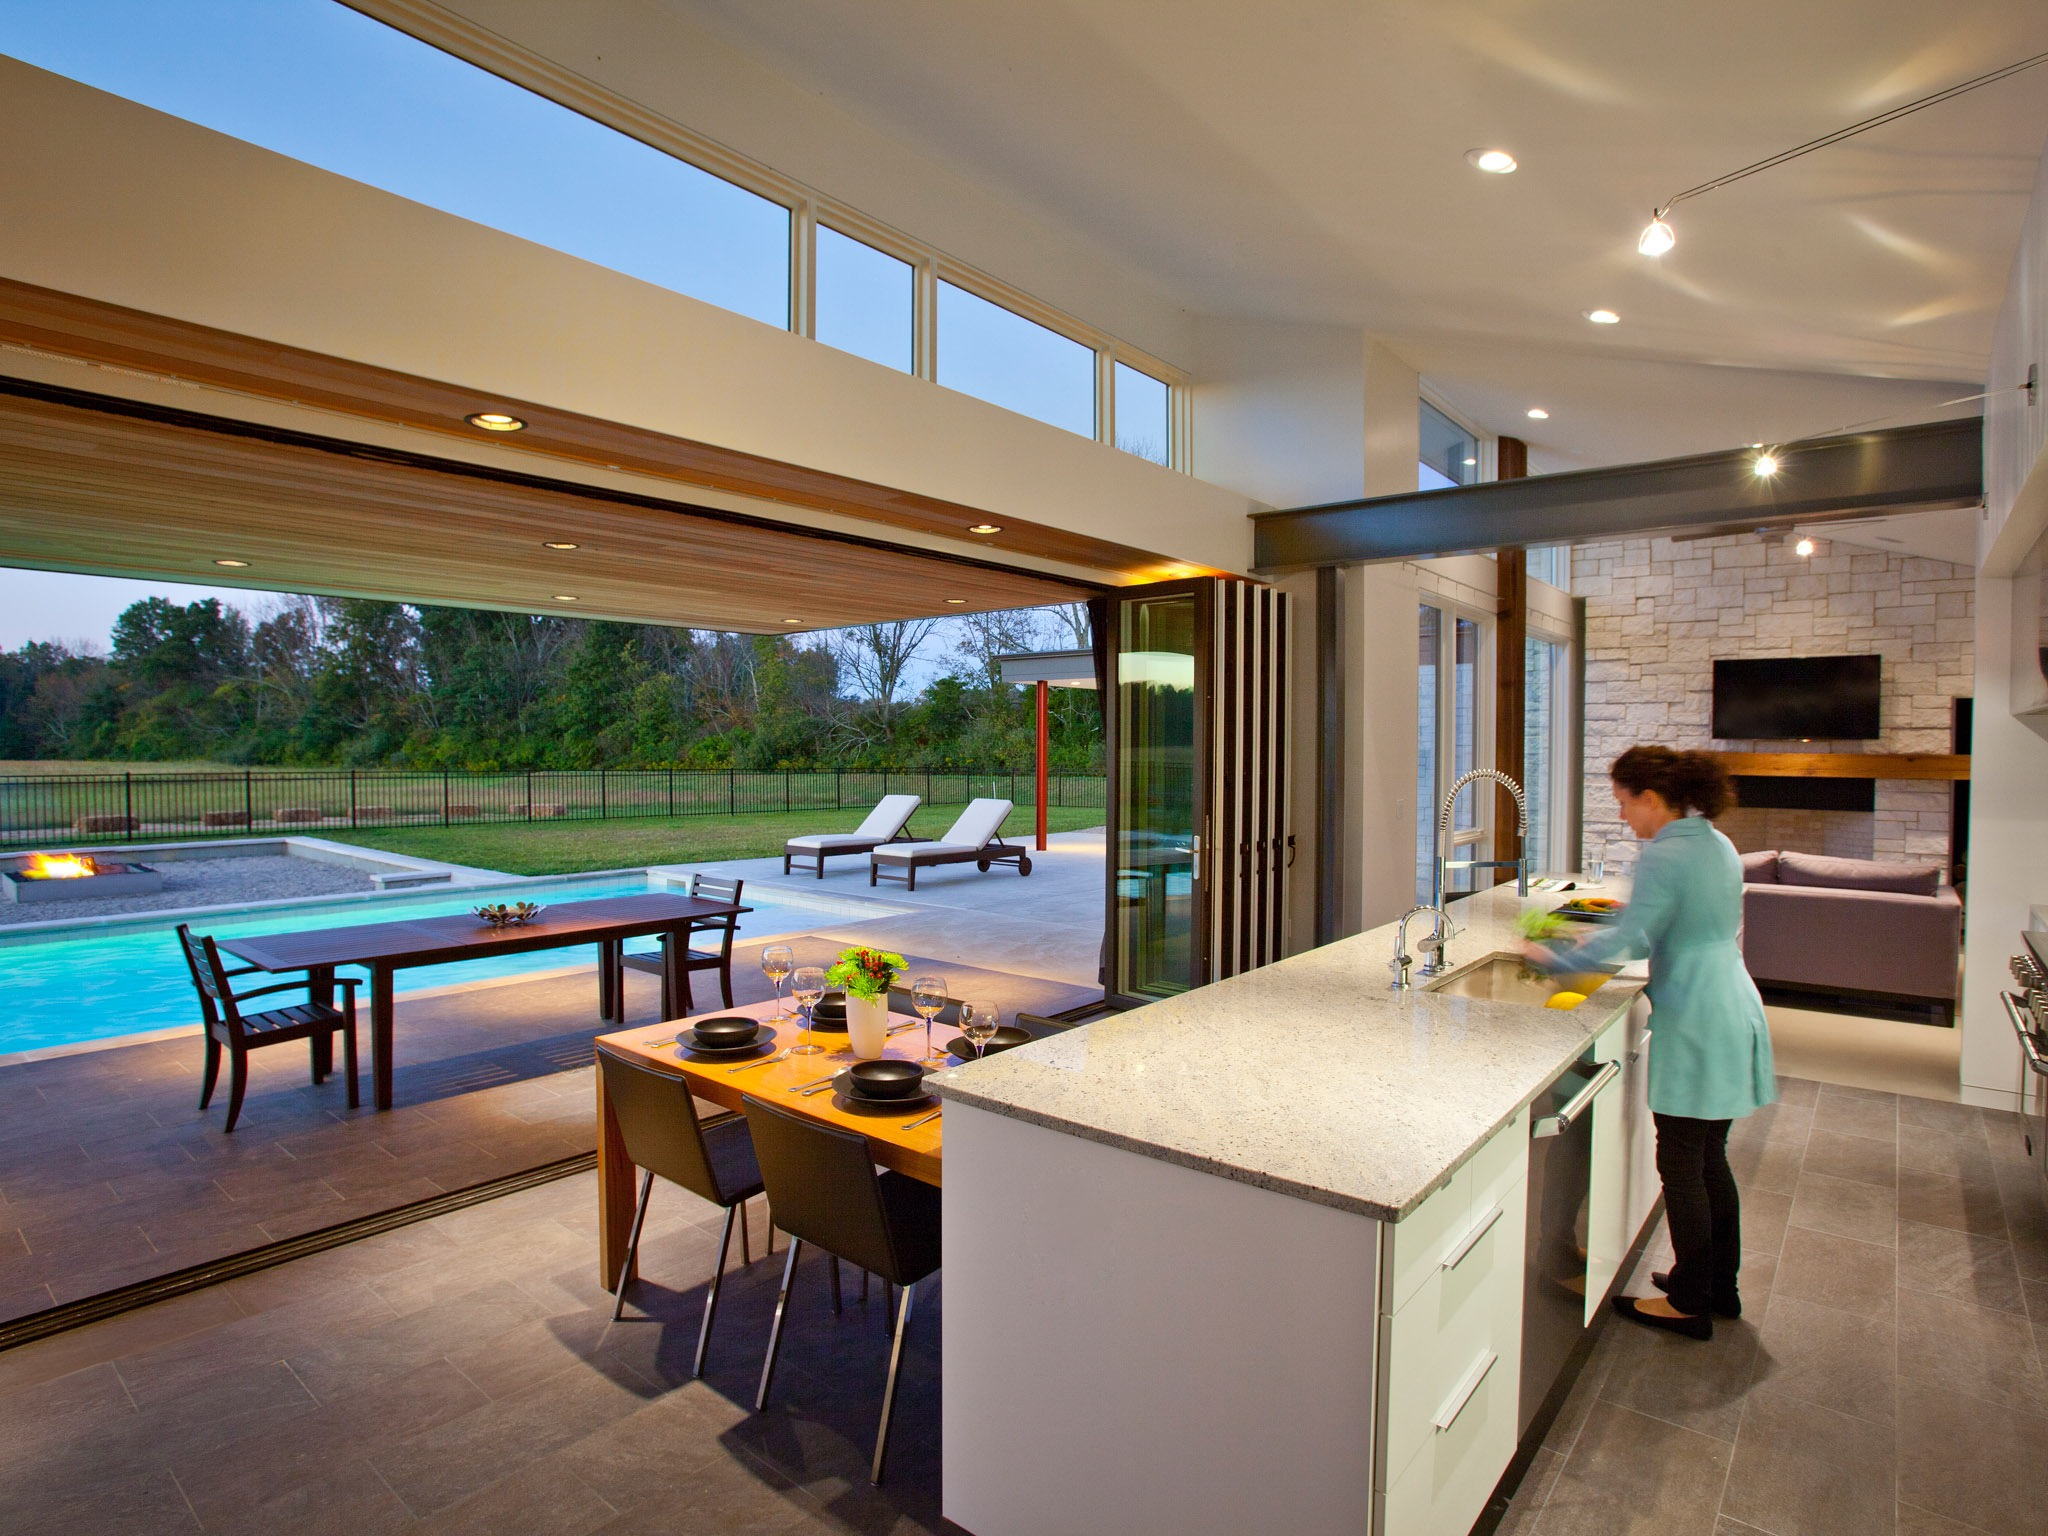 Contemporary Kitchen With Bifolding Glass Doors Open To Swimming Pool And Patio (Image 8 of 24)